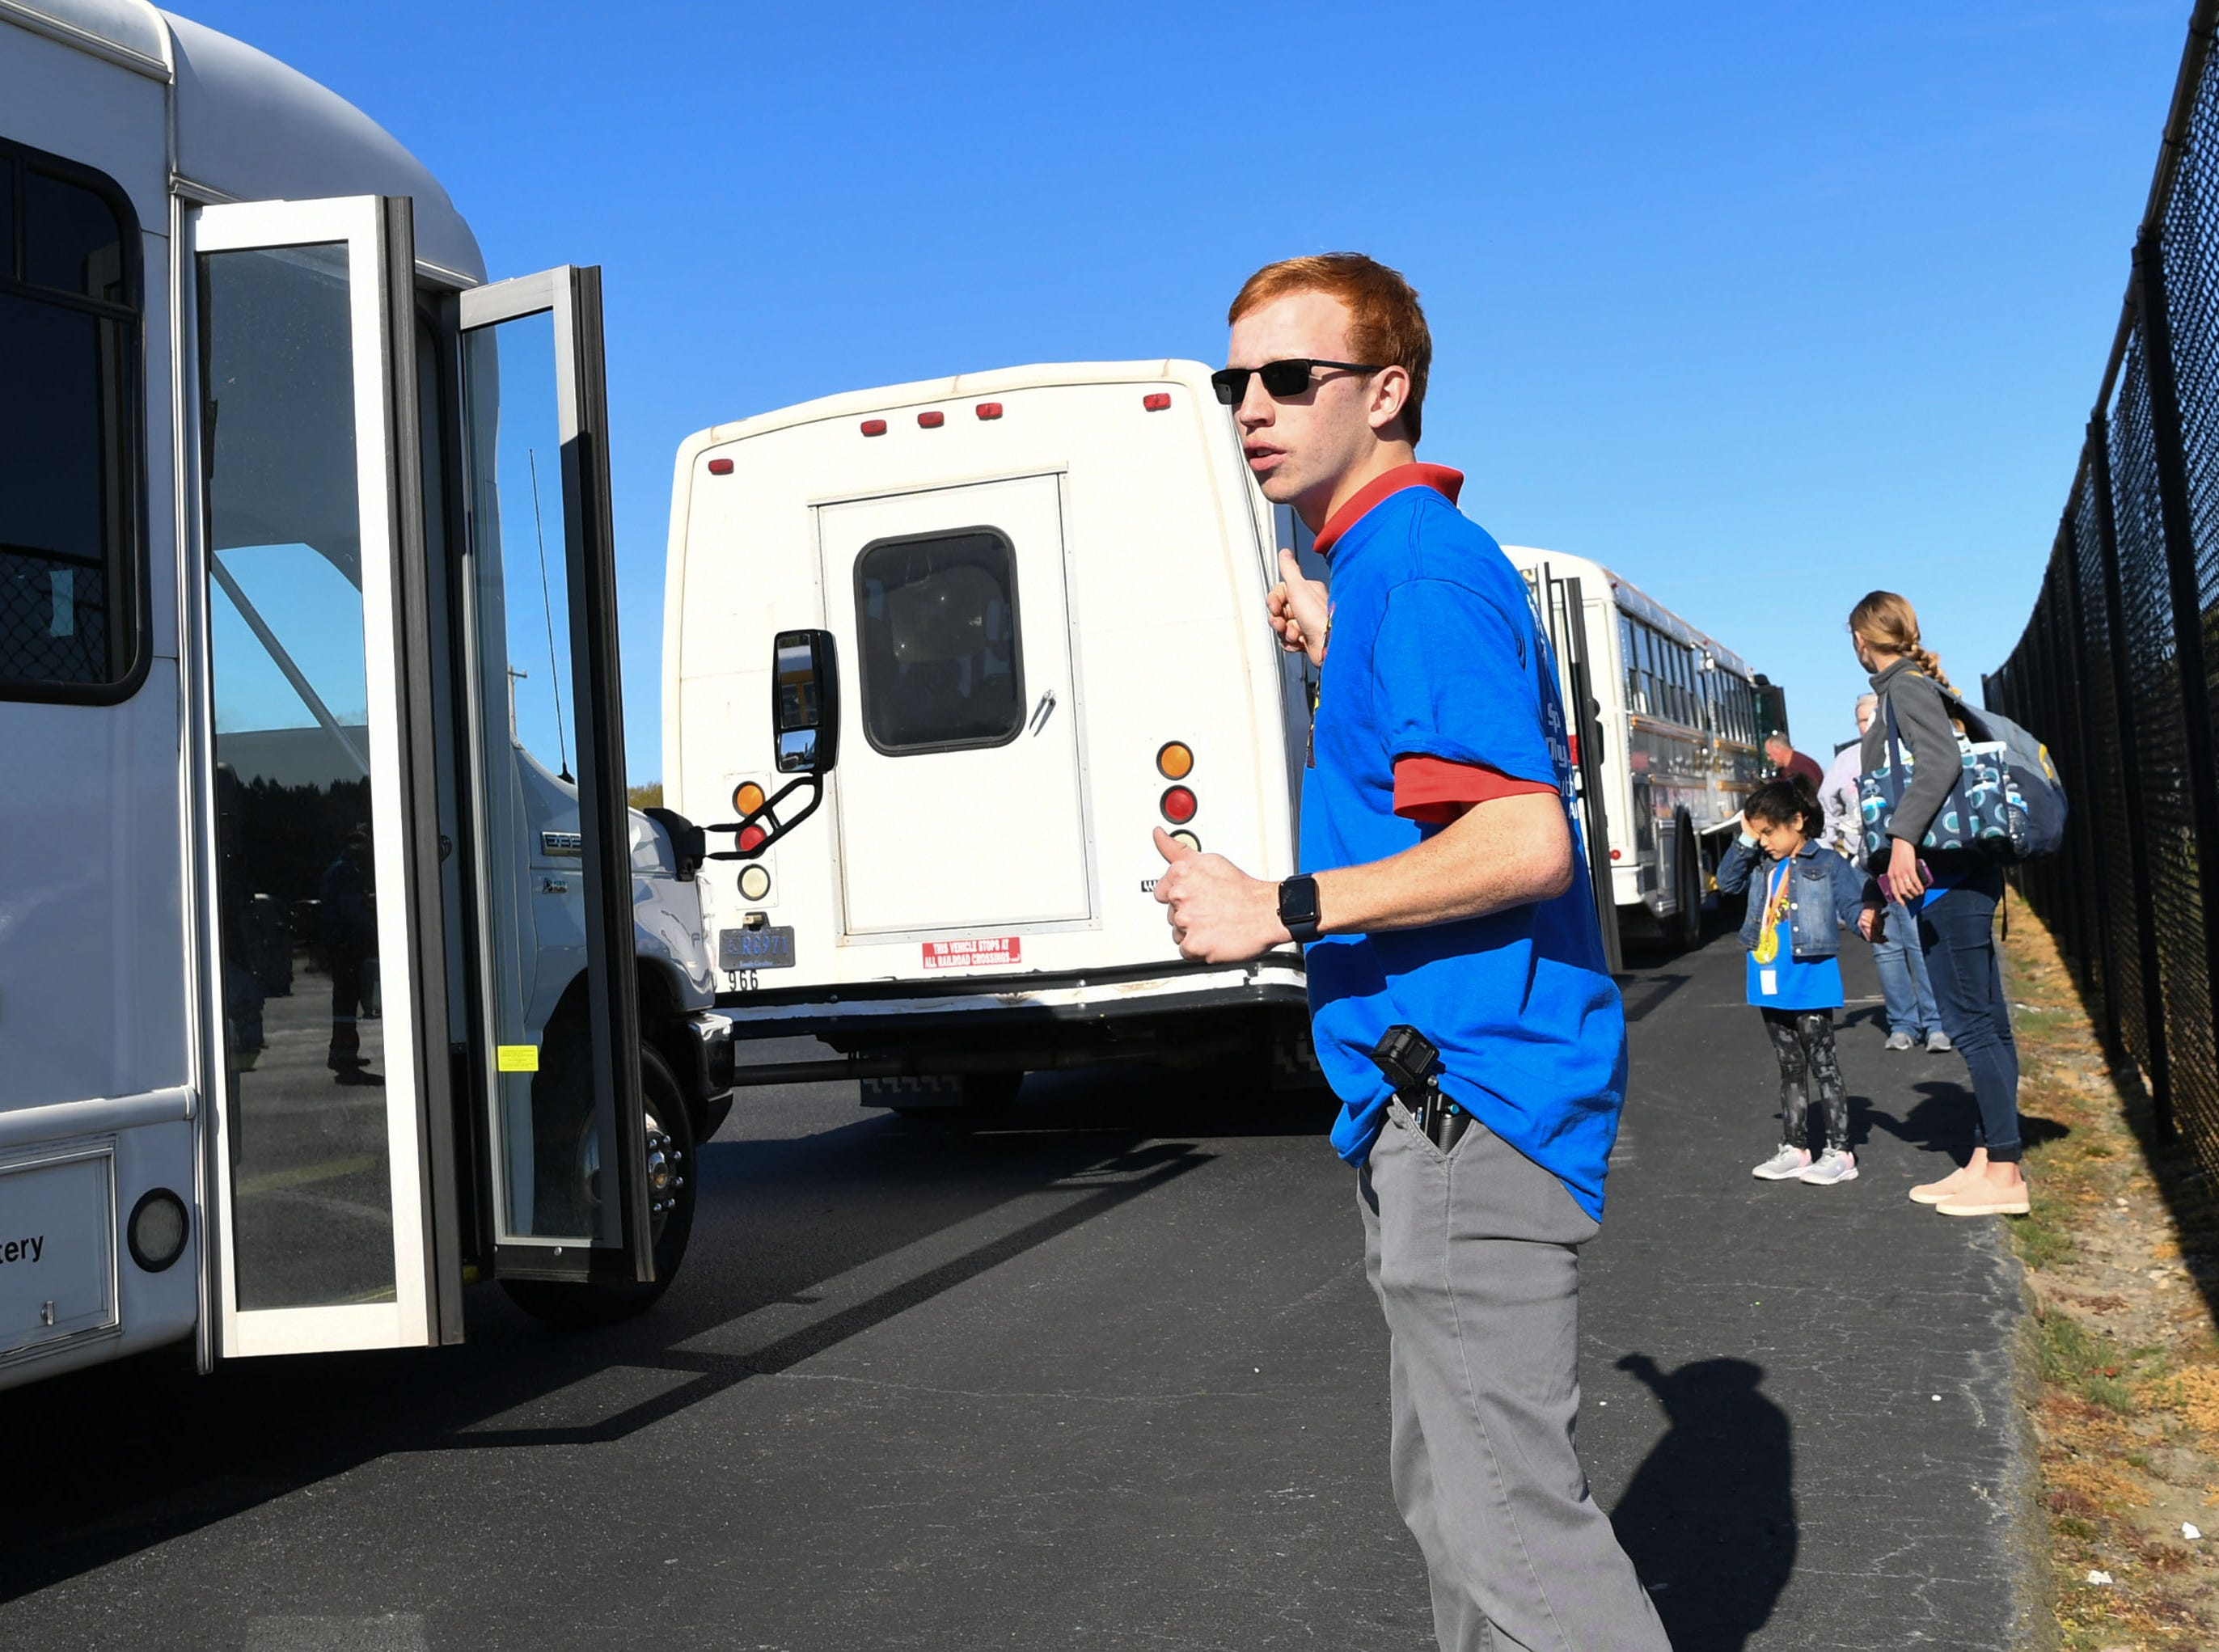 Sam Gilmer, a senior at Belton-Honea Path High School, helps direct athletes from the buses to the field during the Special Olympics South Carolina Area 14 Spring Games at Marlee Gambrell field at the school Wednesday.